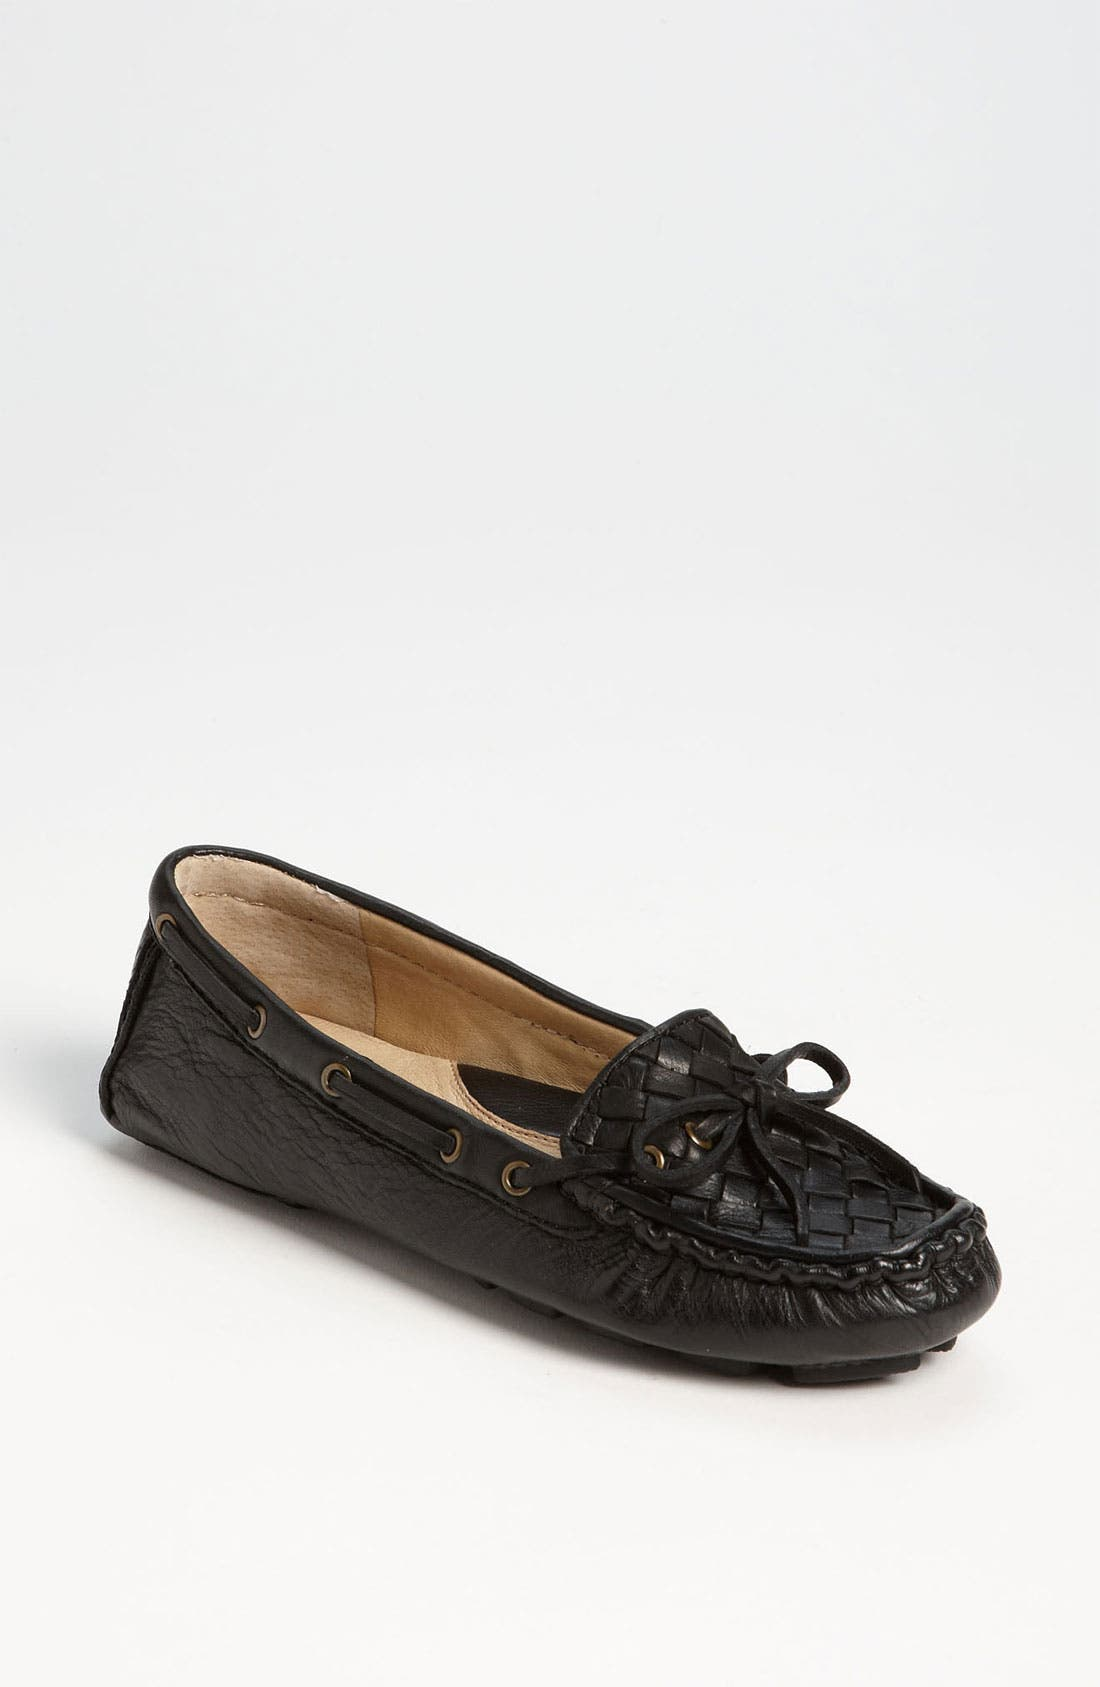 Main Image - Frye 'Reagan' Woven Flat (Online Only)